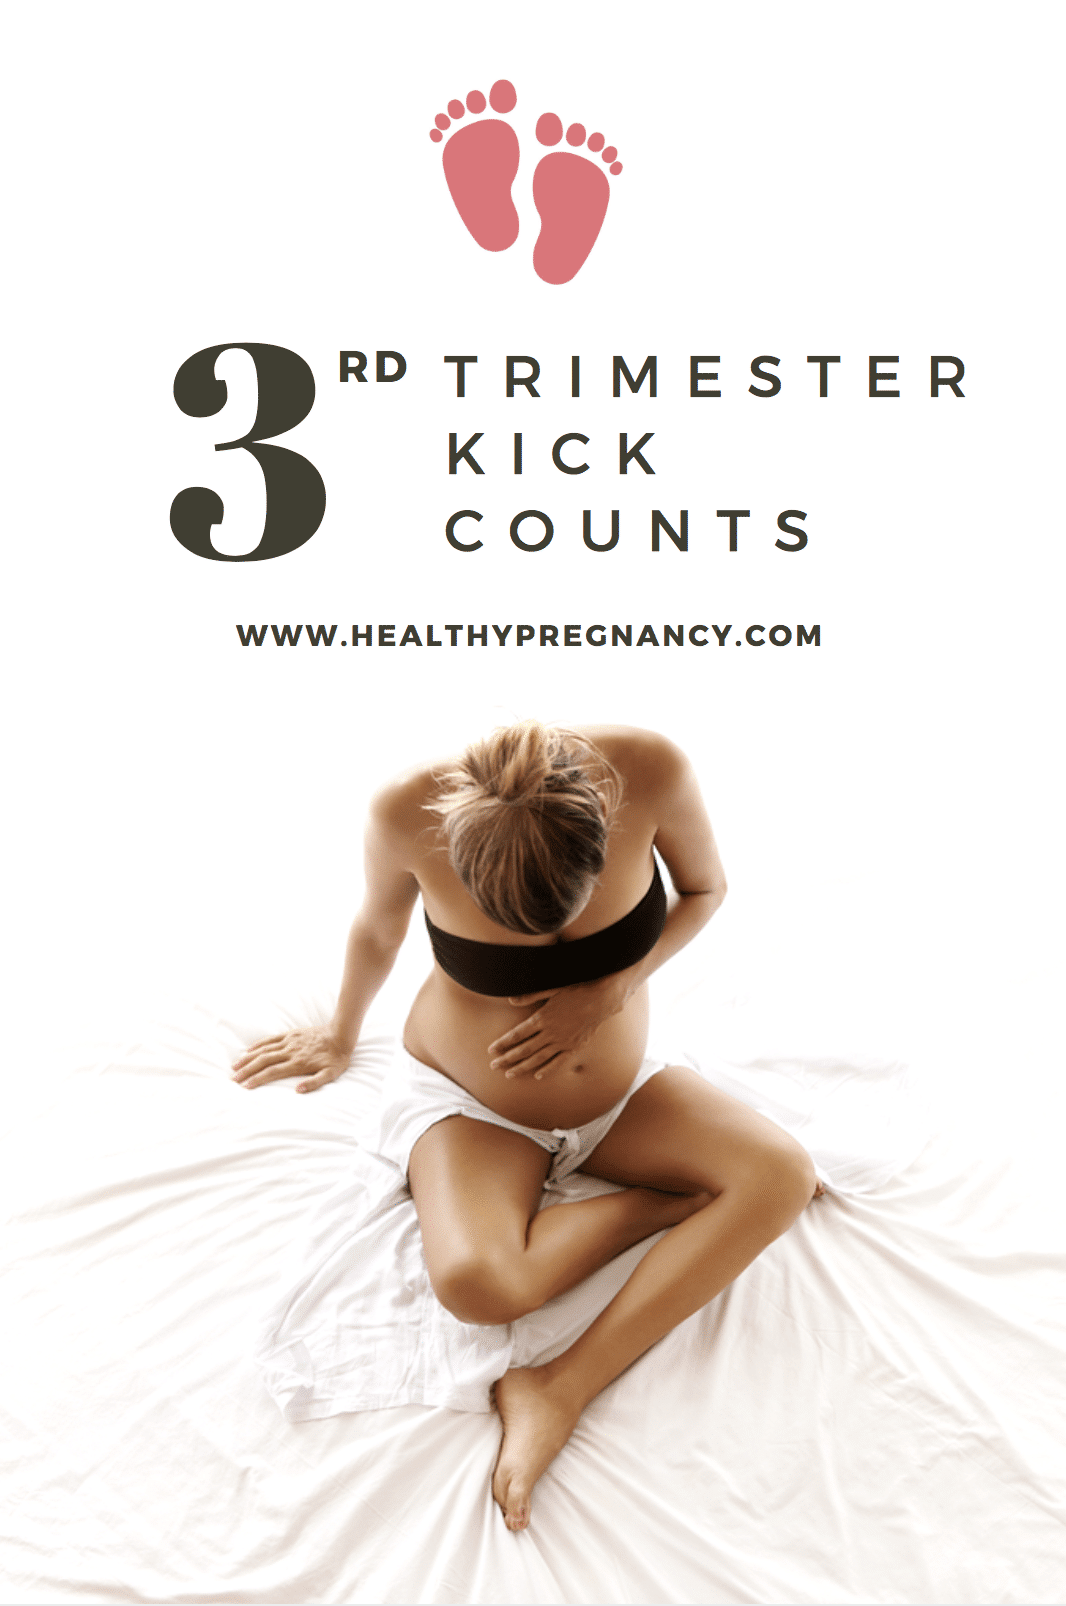 A guide to third trimester kick counts